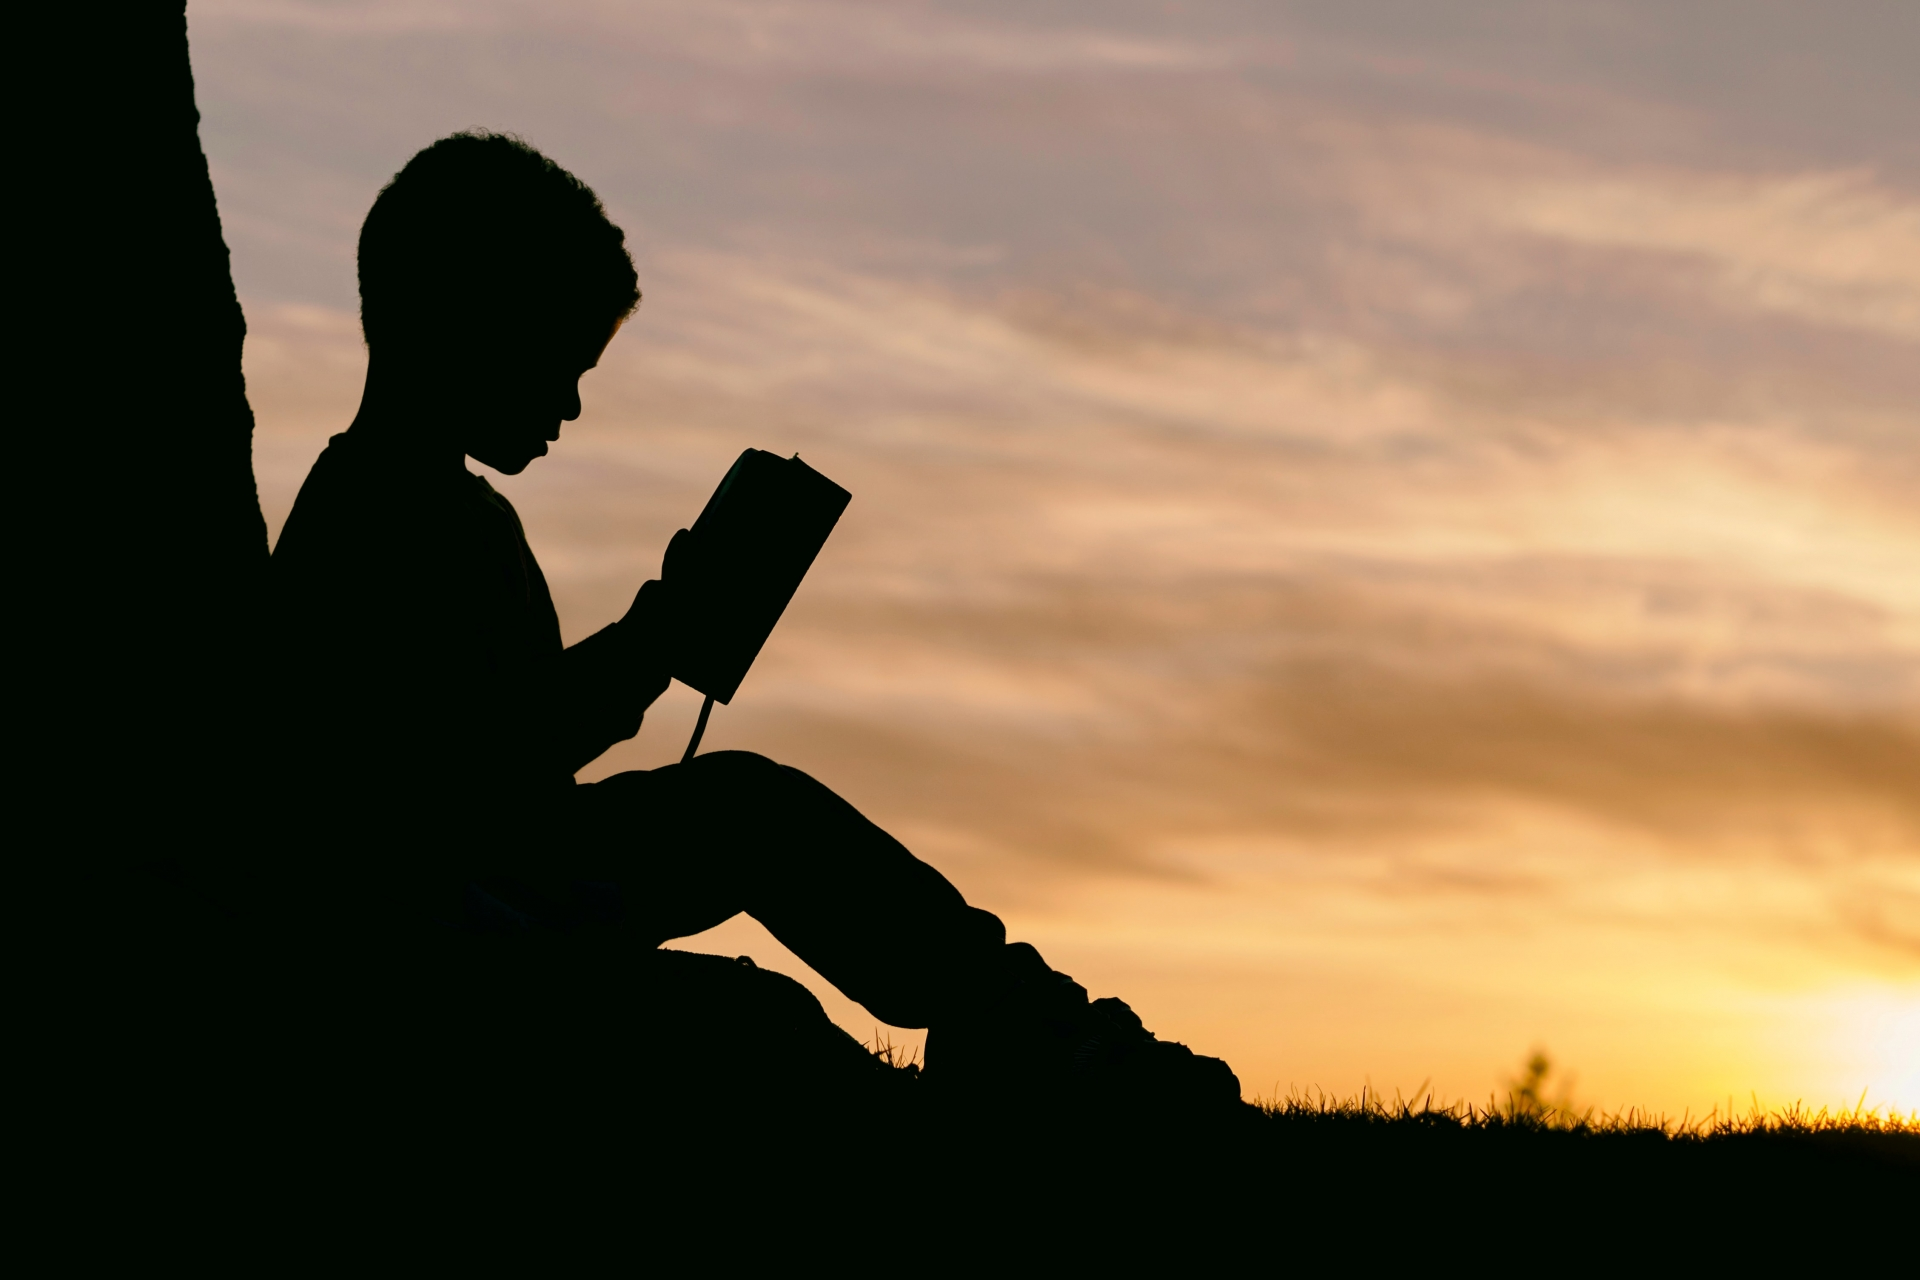 A Guide for Dyslexic Readers / Readers with Dyslexia